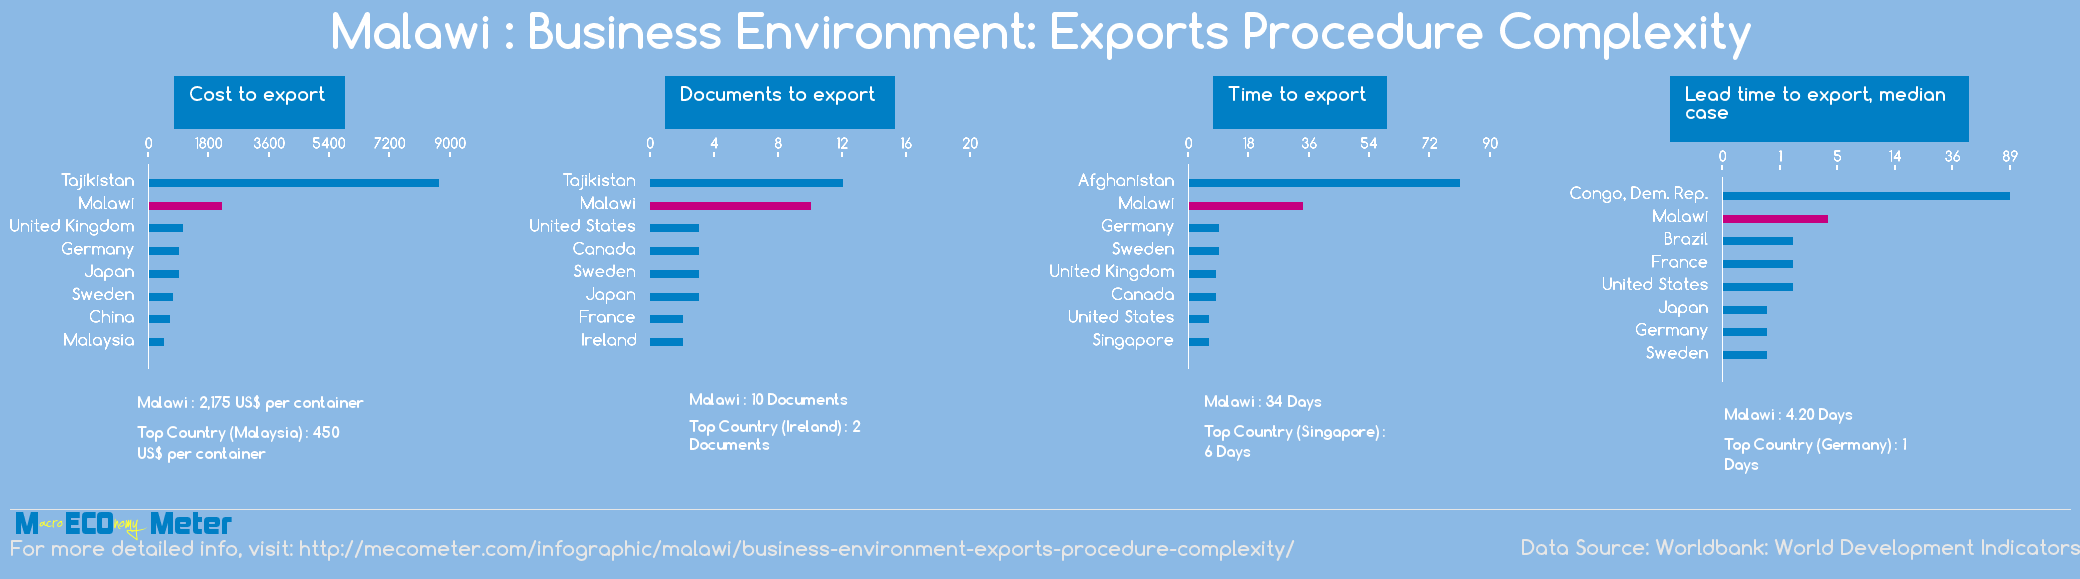 Malawi : Business Environment: Exports Procedure Complexity